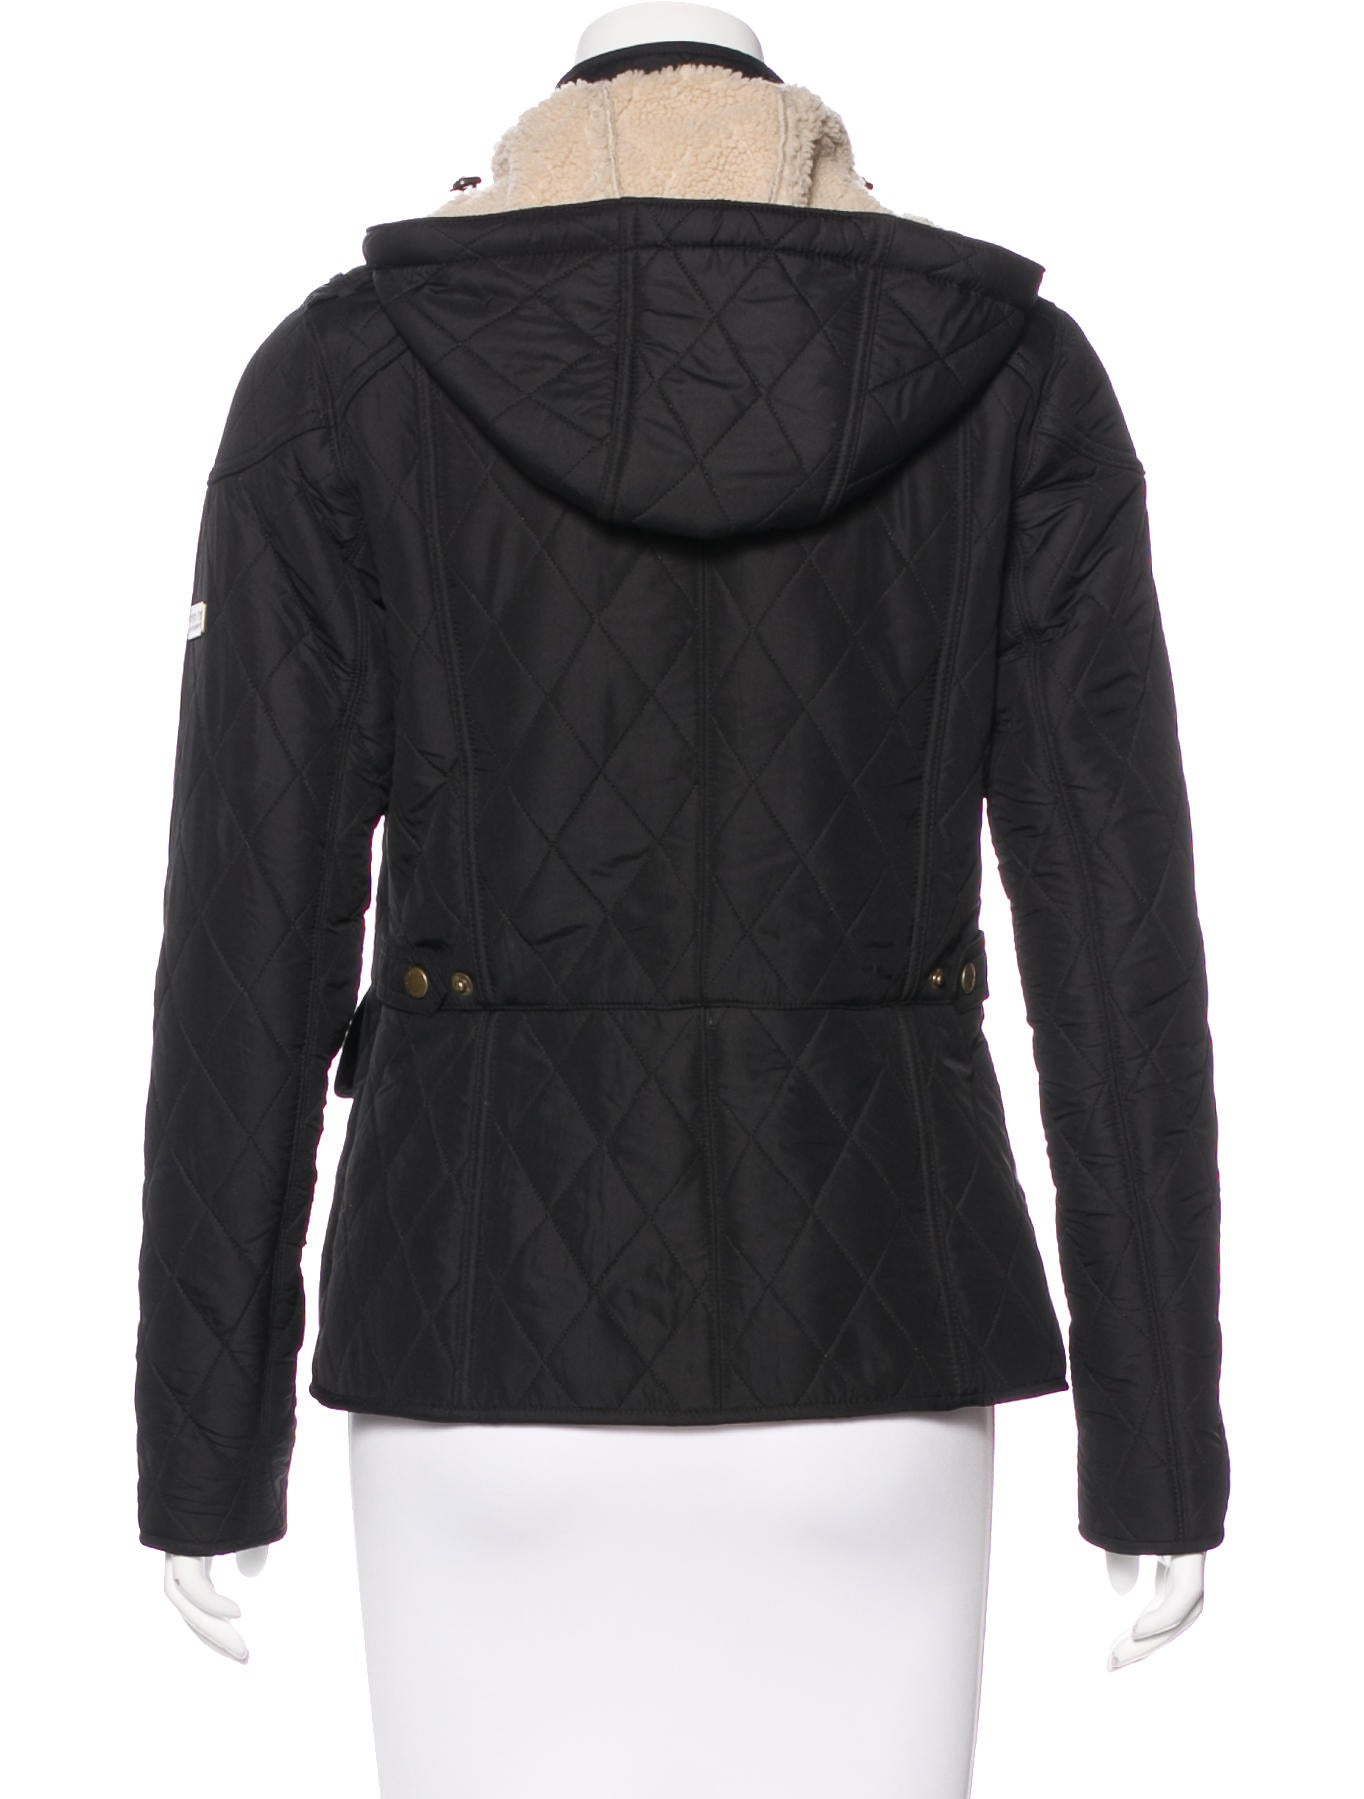 Hooded barbour jacket womens